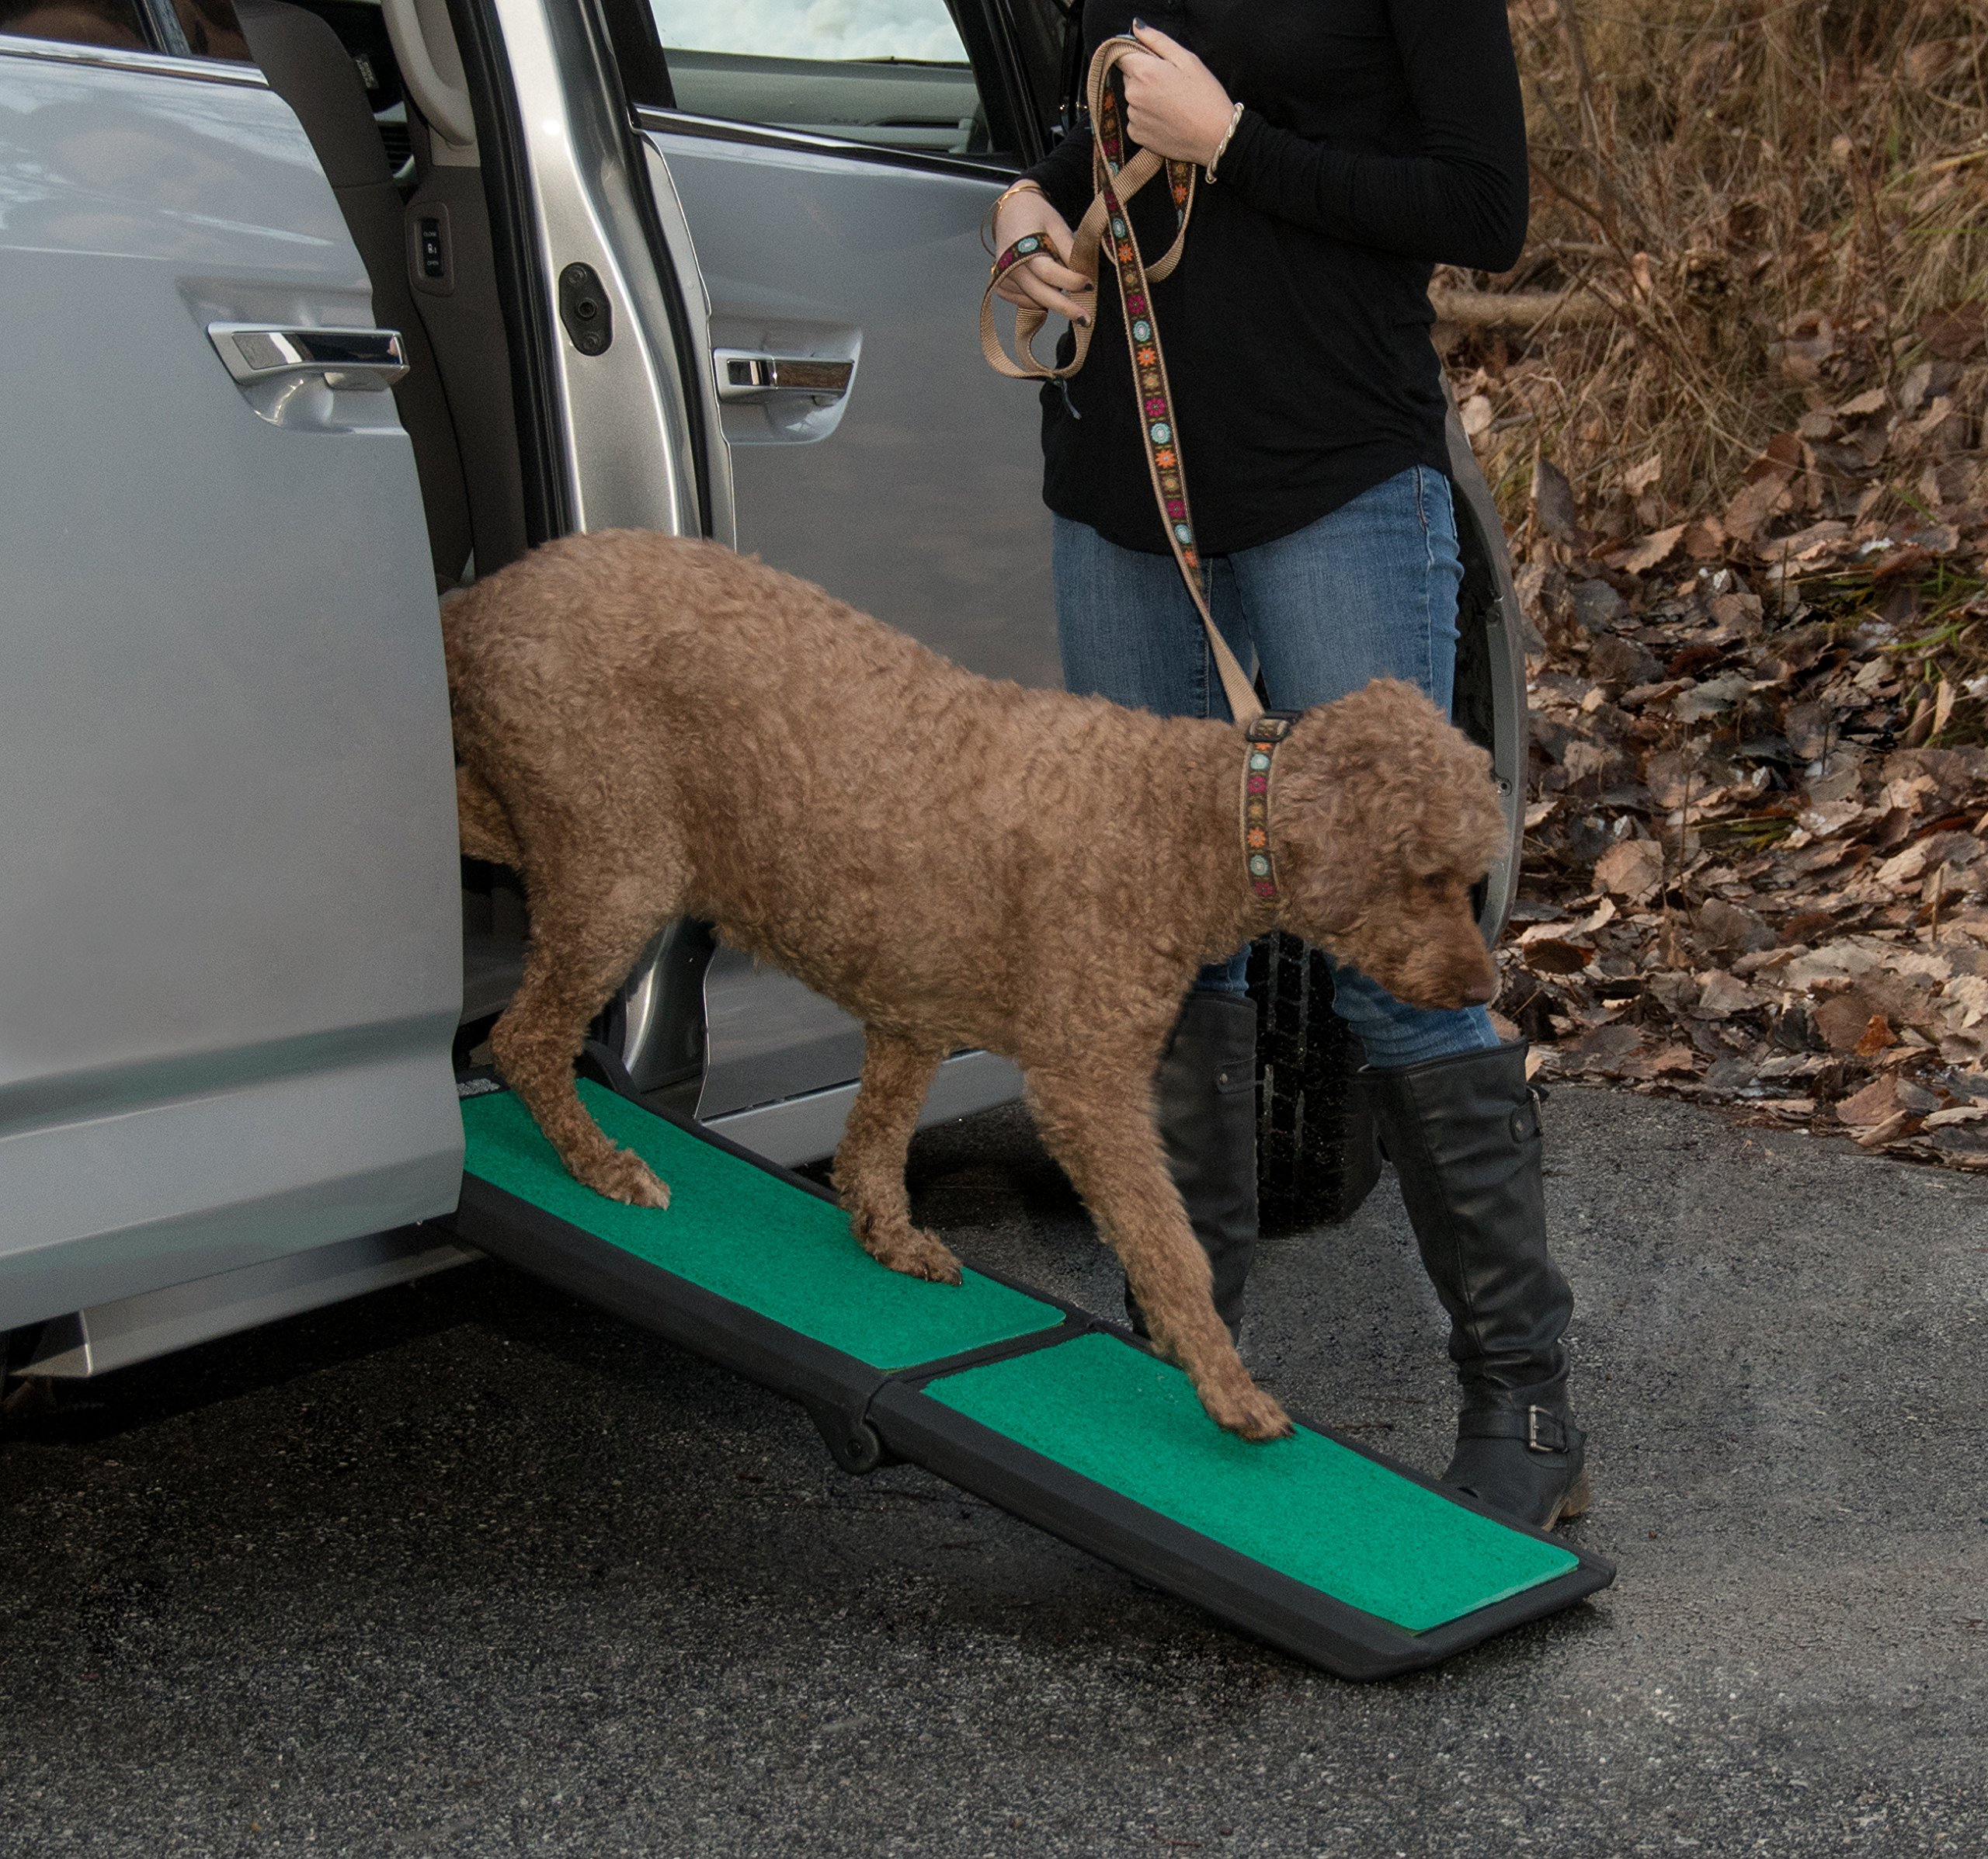 Pet Gear Travel Lite Ramp with supertraX Surface for Maximum Traction, 4 Models to Choose from, 42-71 in. Long, Supports 150-200 lbs, Find The Best Fit for Your Pet 2